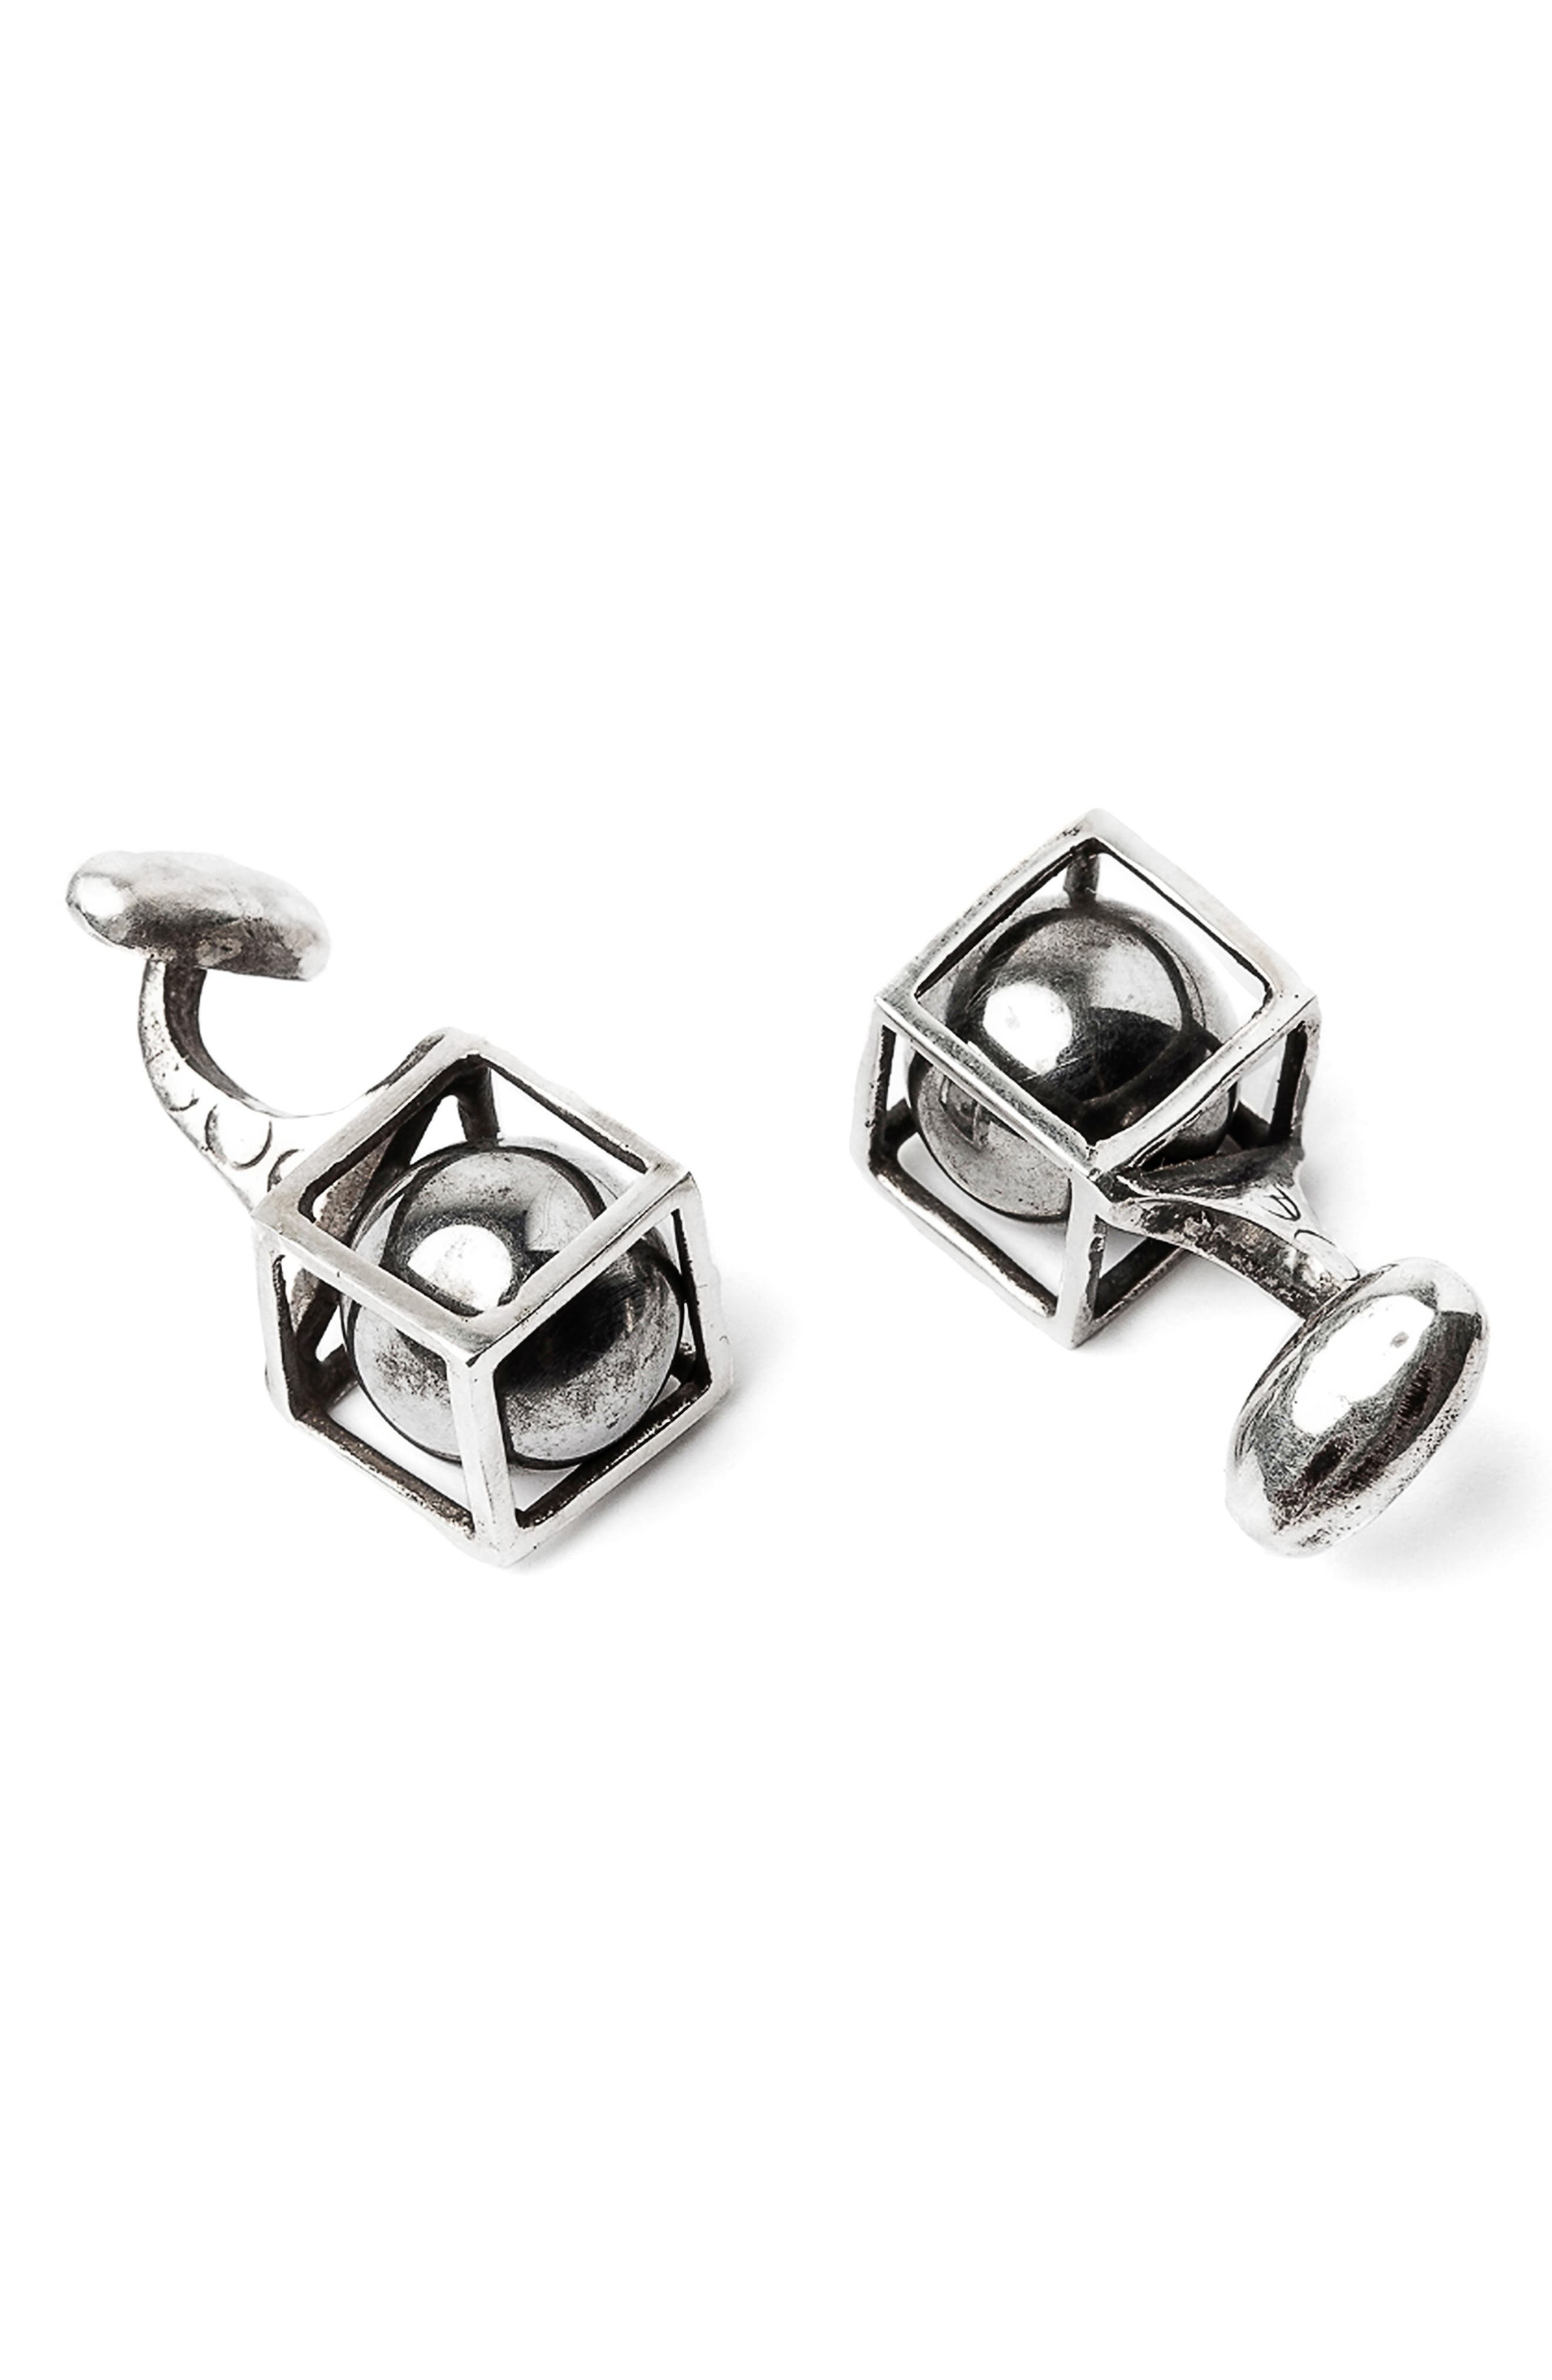 Sphere in Cube Cuff Links,                             Main thumbnail 1, color,                             Silver